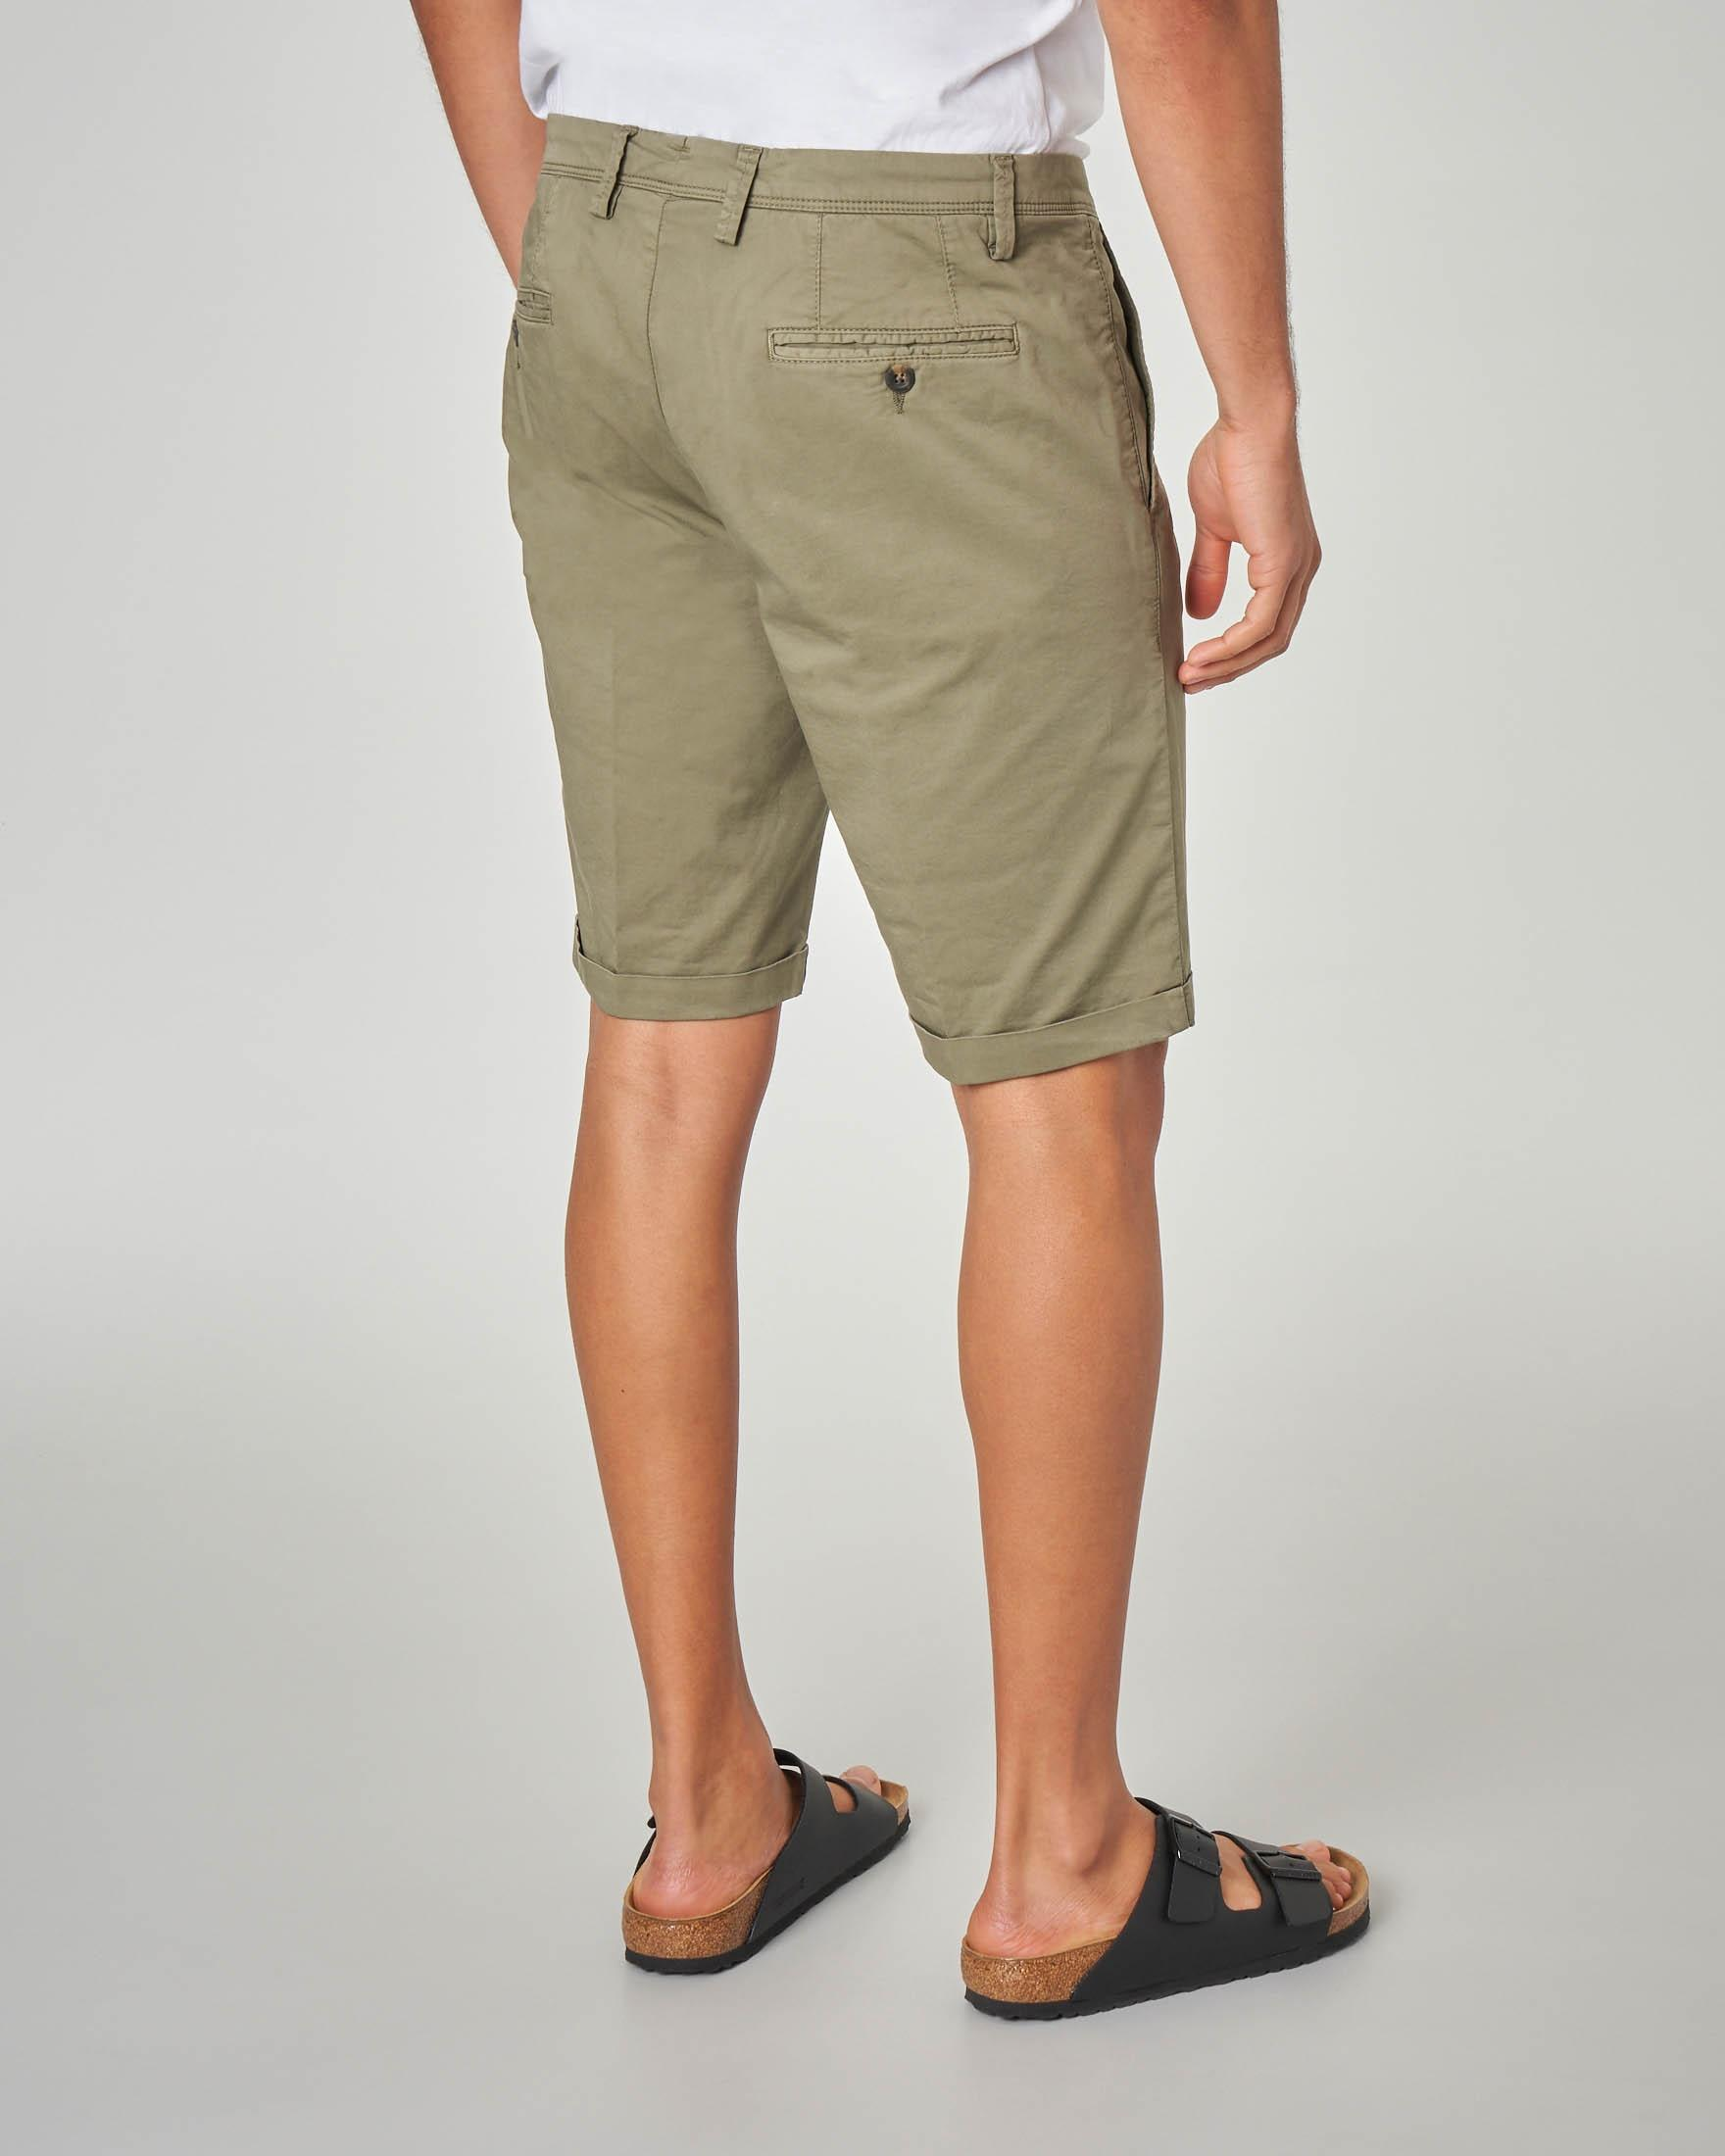 Bermuda chino verde militare in gabardina stretch